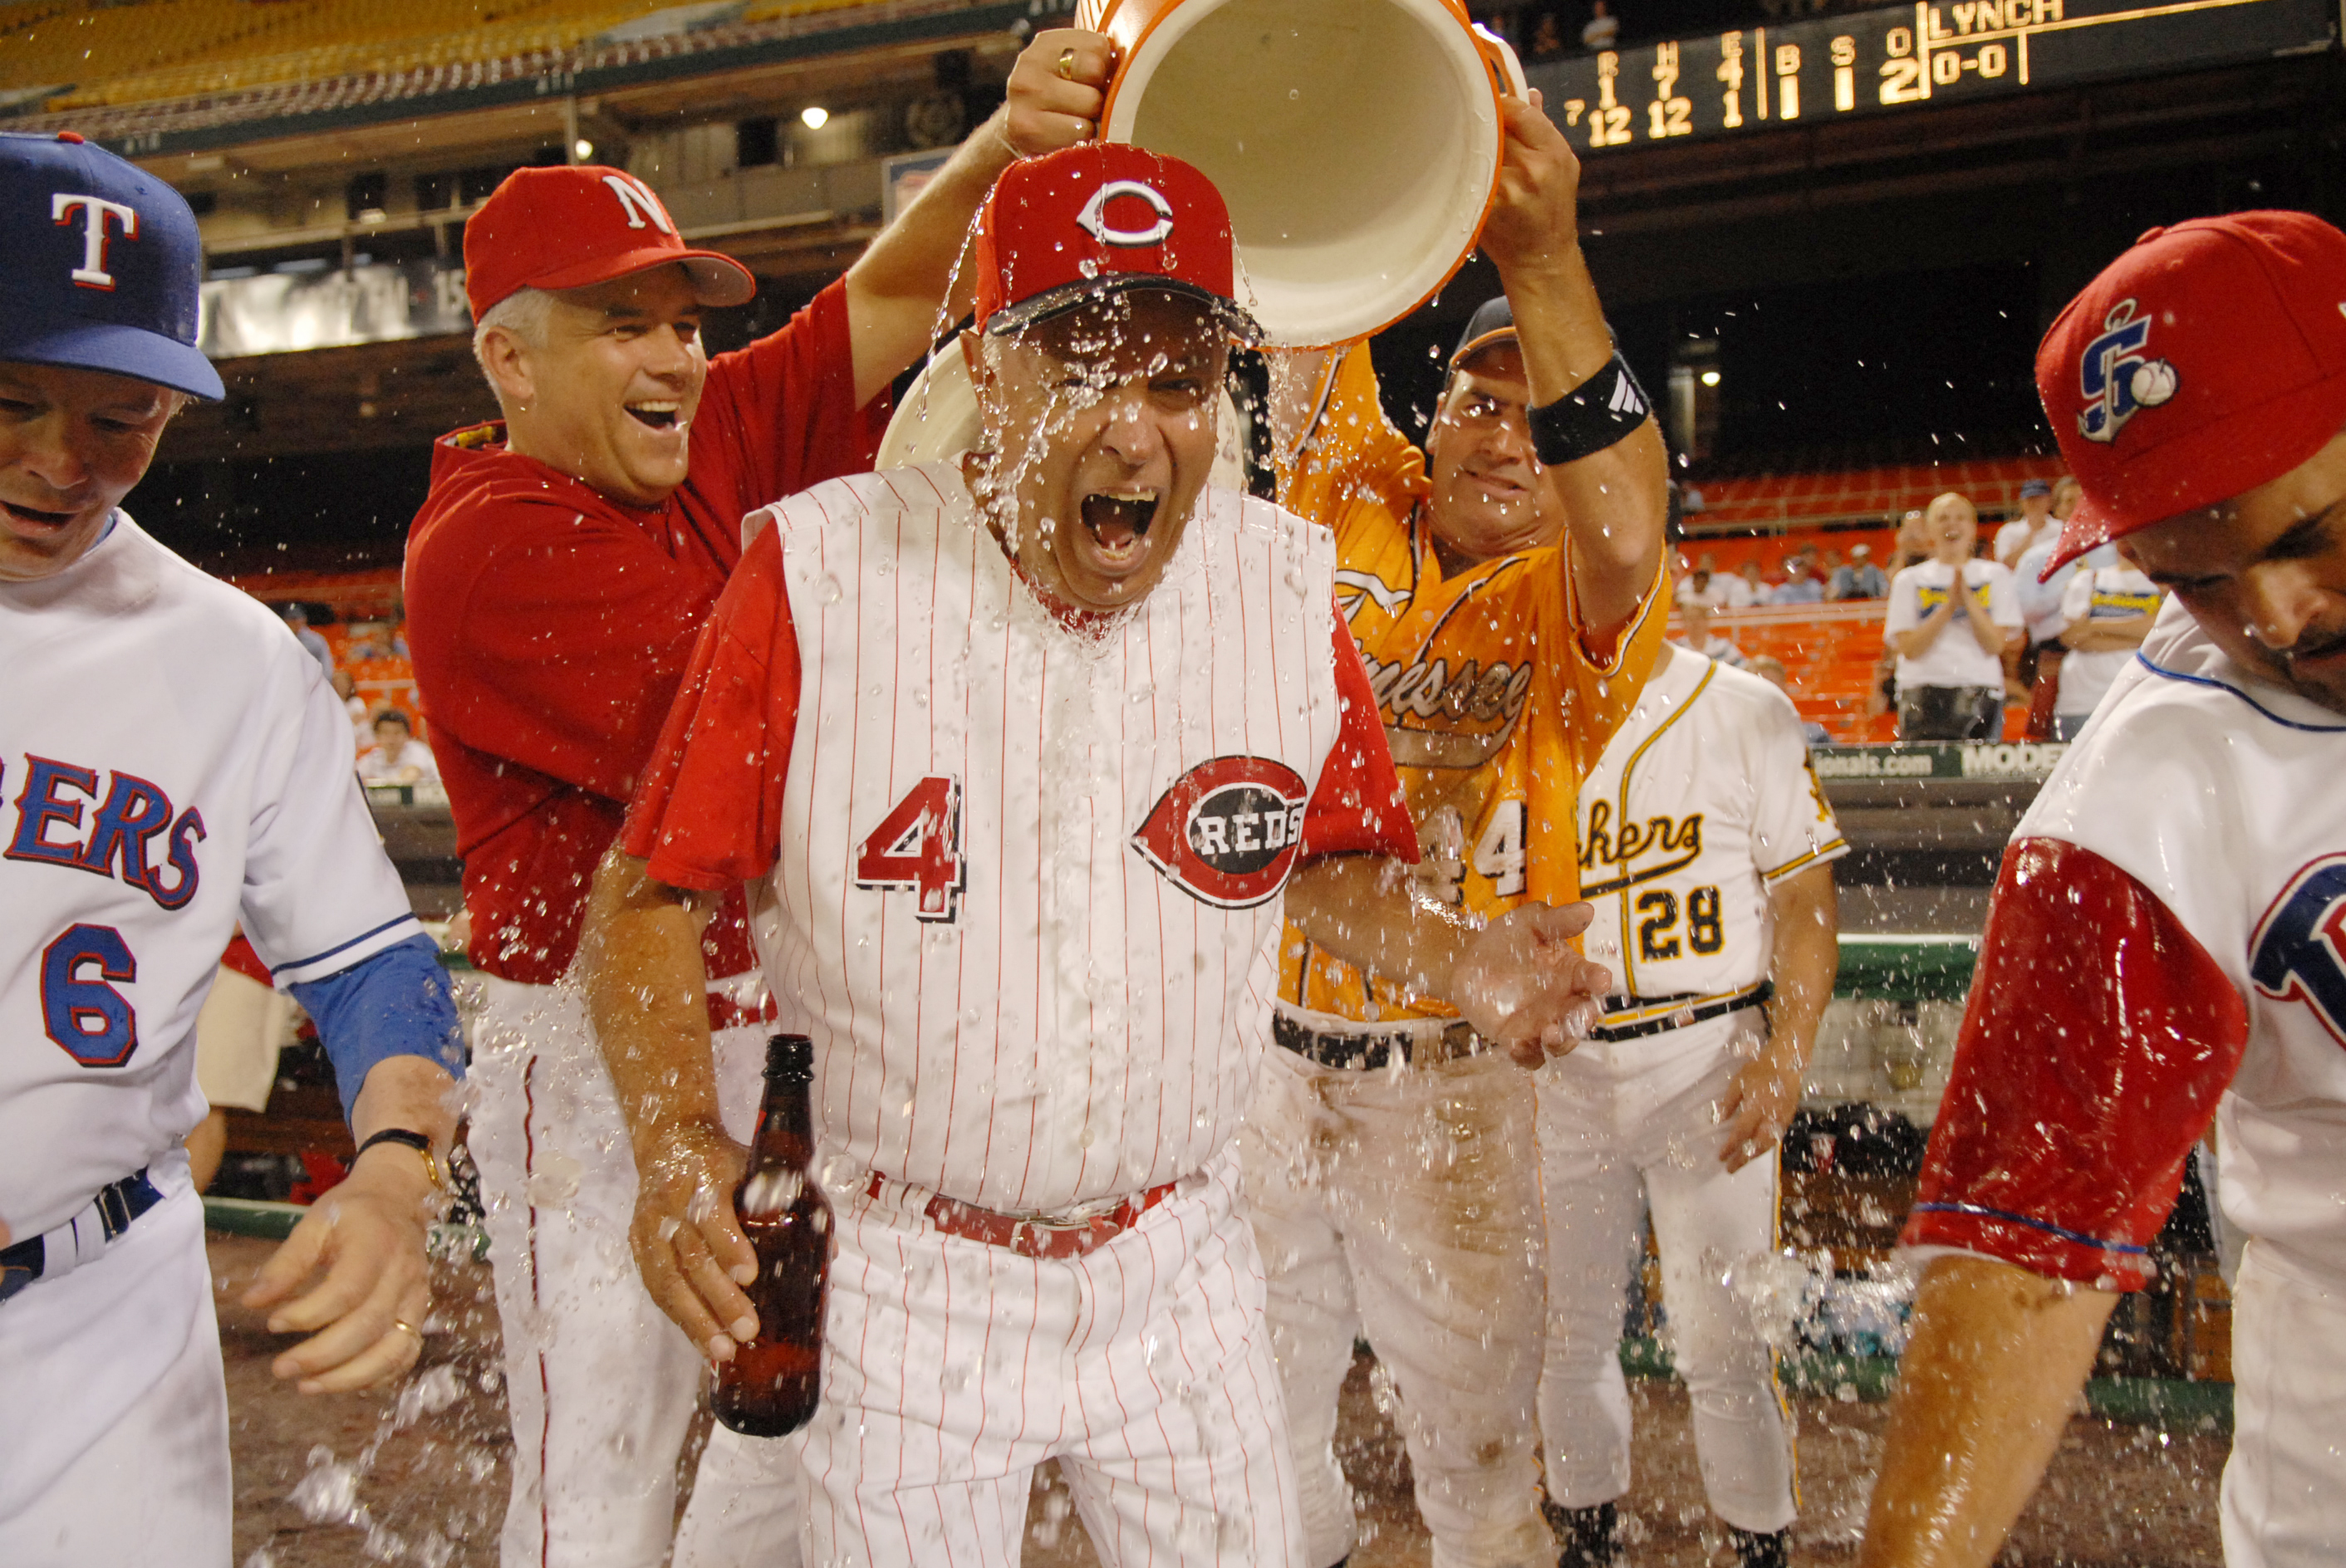 Coach Mike Oxley, R-Ohio, gets water dumped on him in celebration at the 45th Annual Roll Call Congressional Baseball game played at RFK stadium.